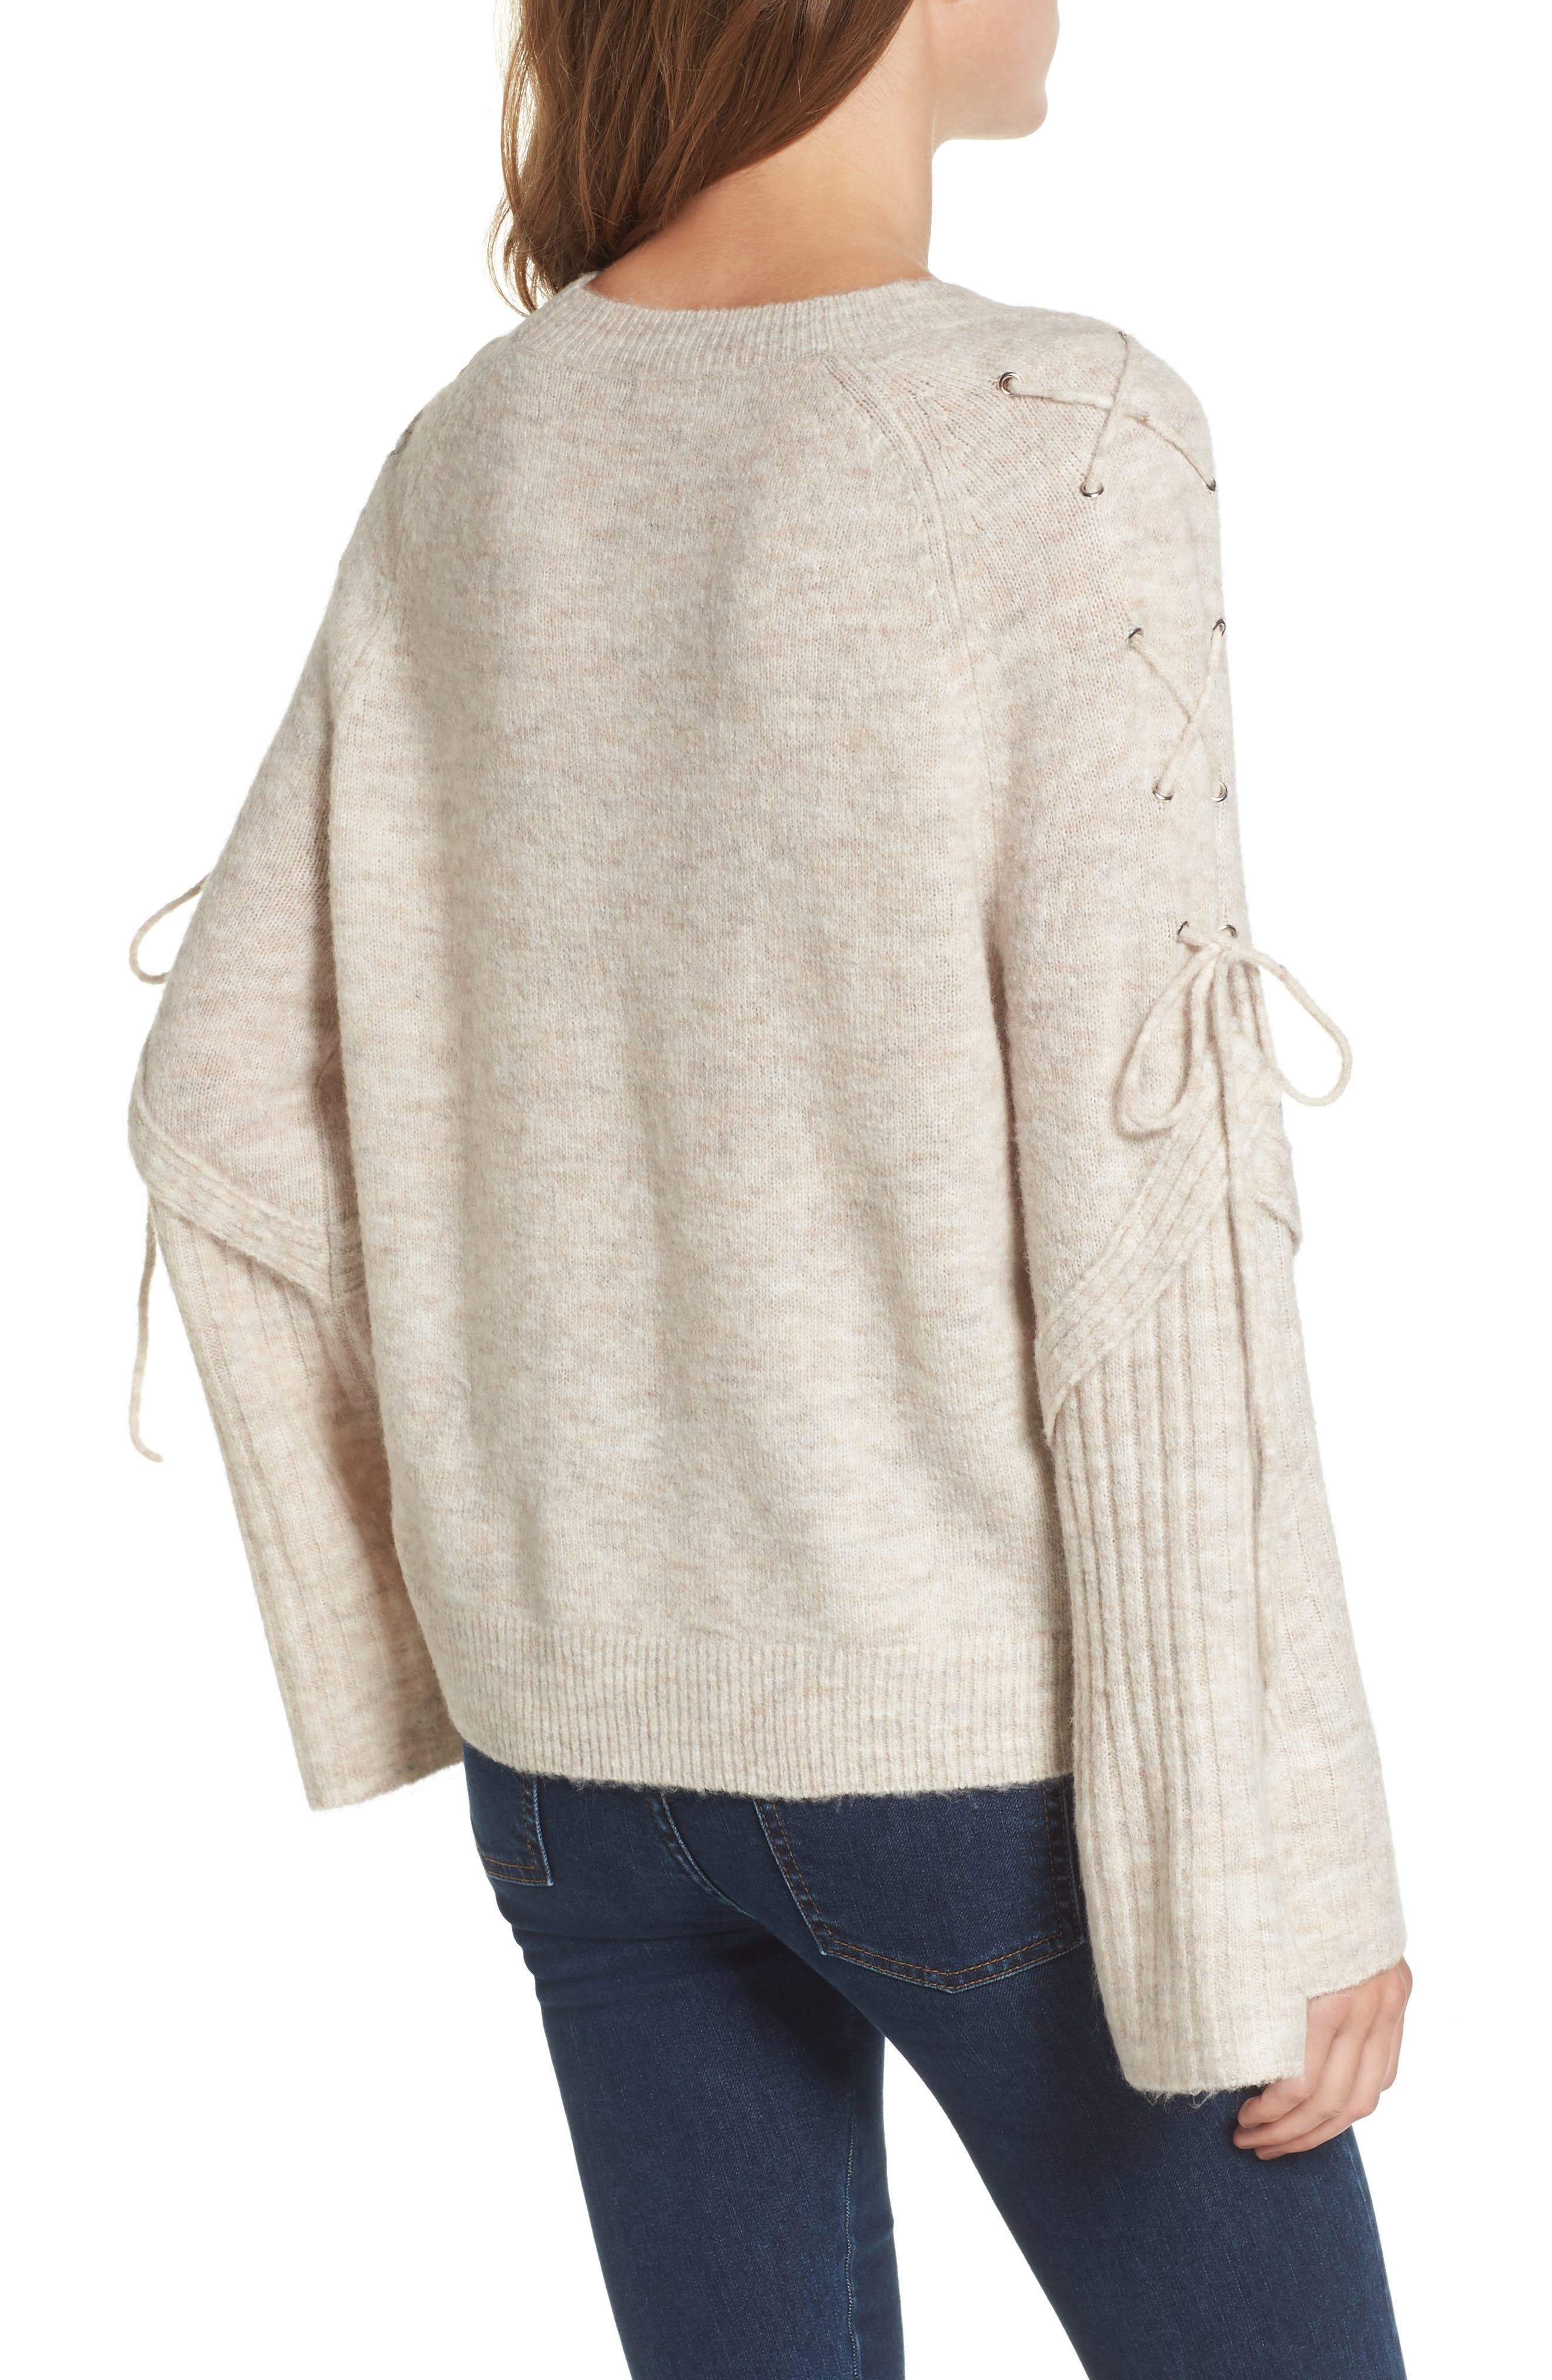 Lace Up Shoulder Sweater,                             Alternate thumbnail 2, color,                             260